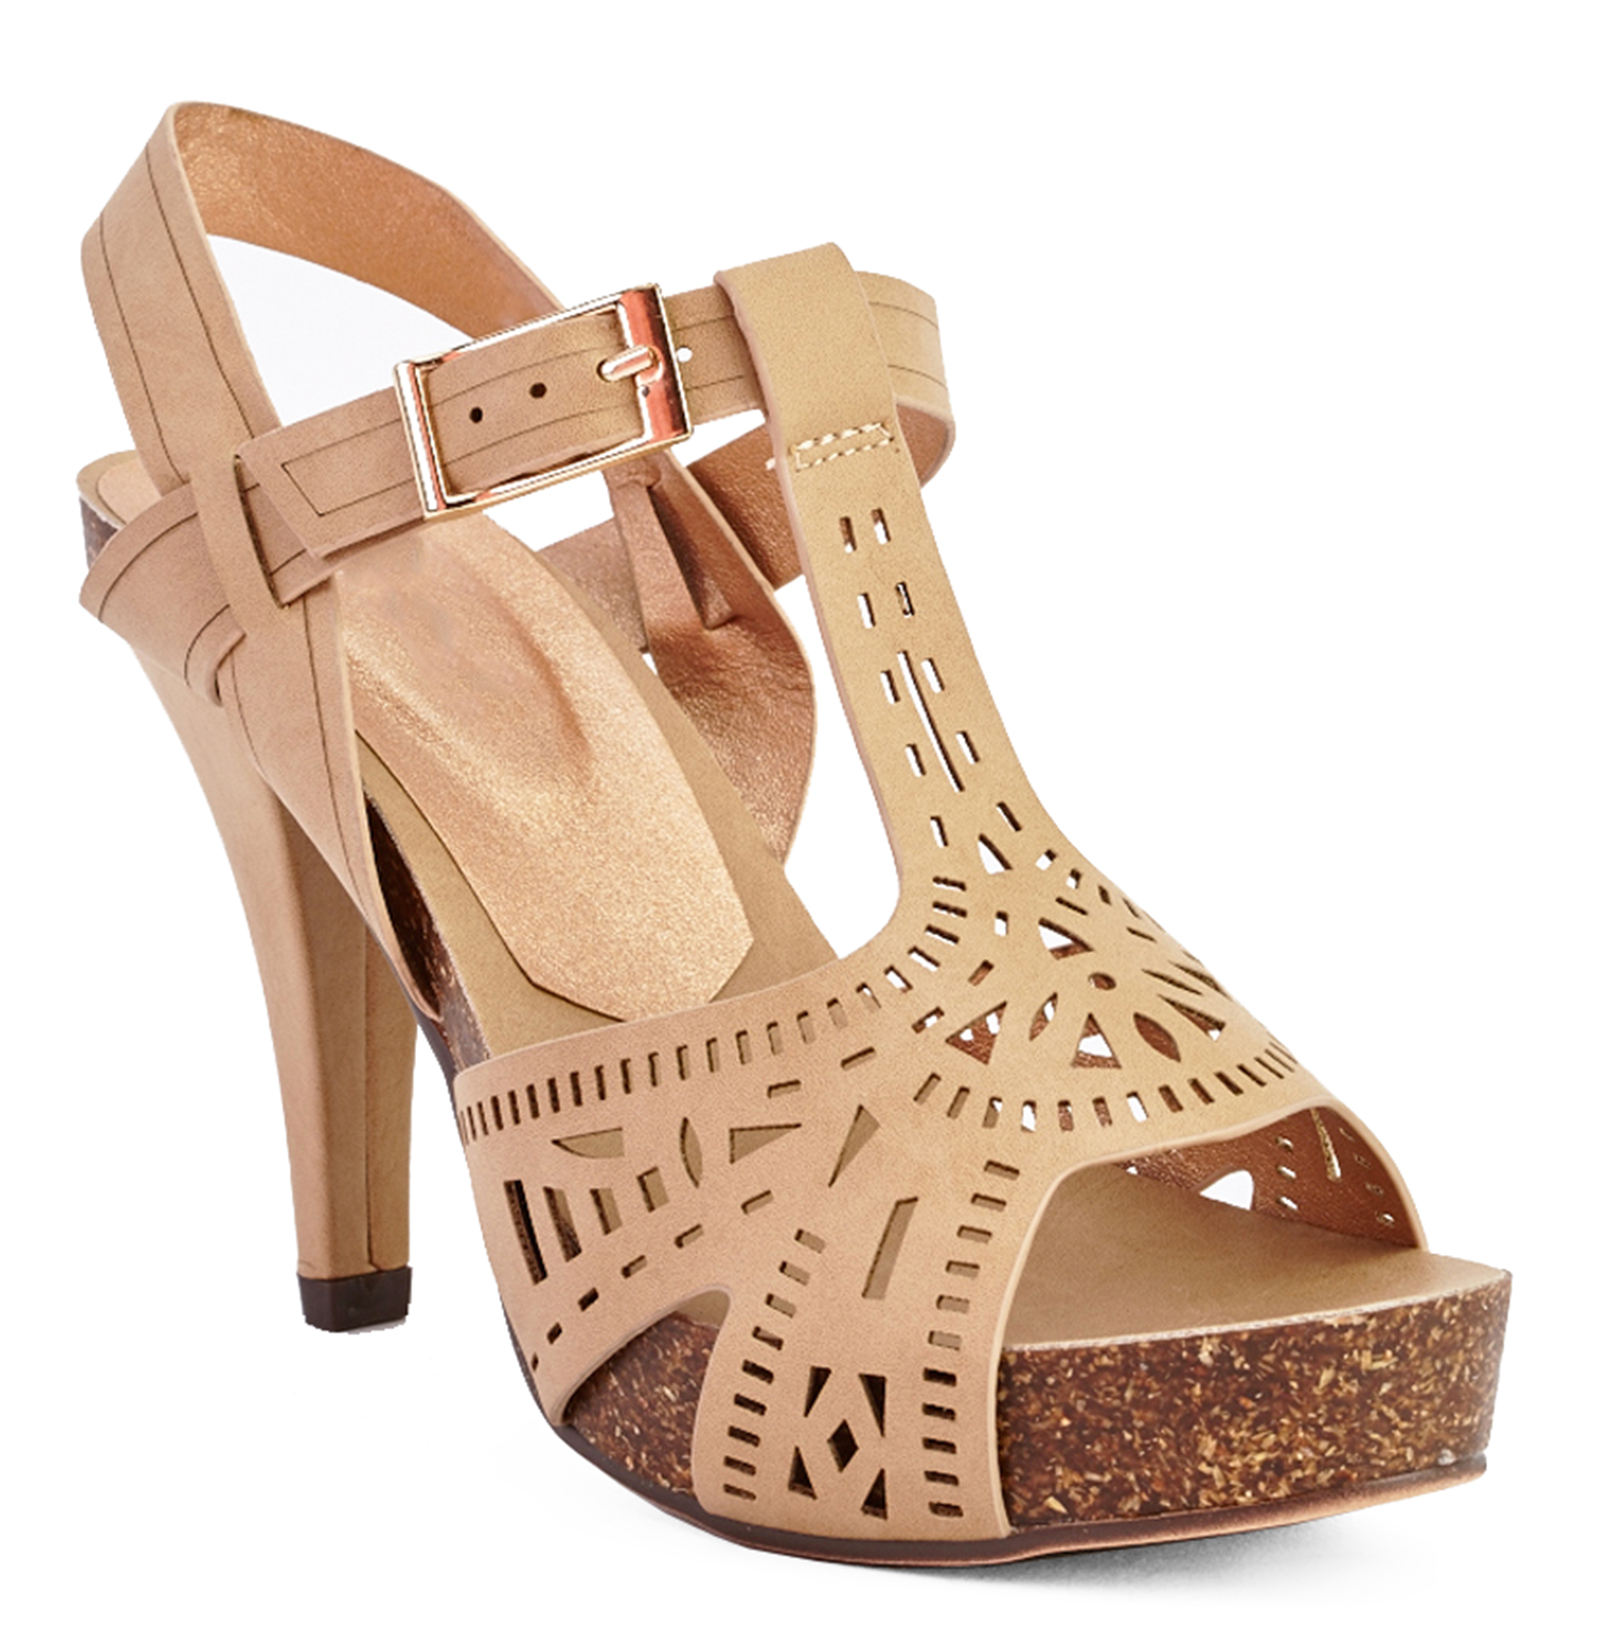 014243d5114 Sentinel LADIES TAN STRAPPY GLADIATOR HIGH-HEEL T-BAR PEEP-TOE SANDALS  SHOES SIZES